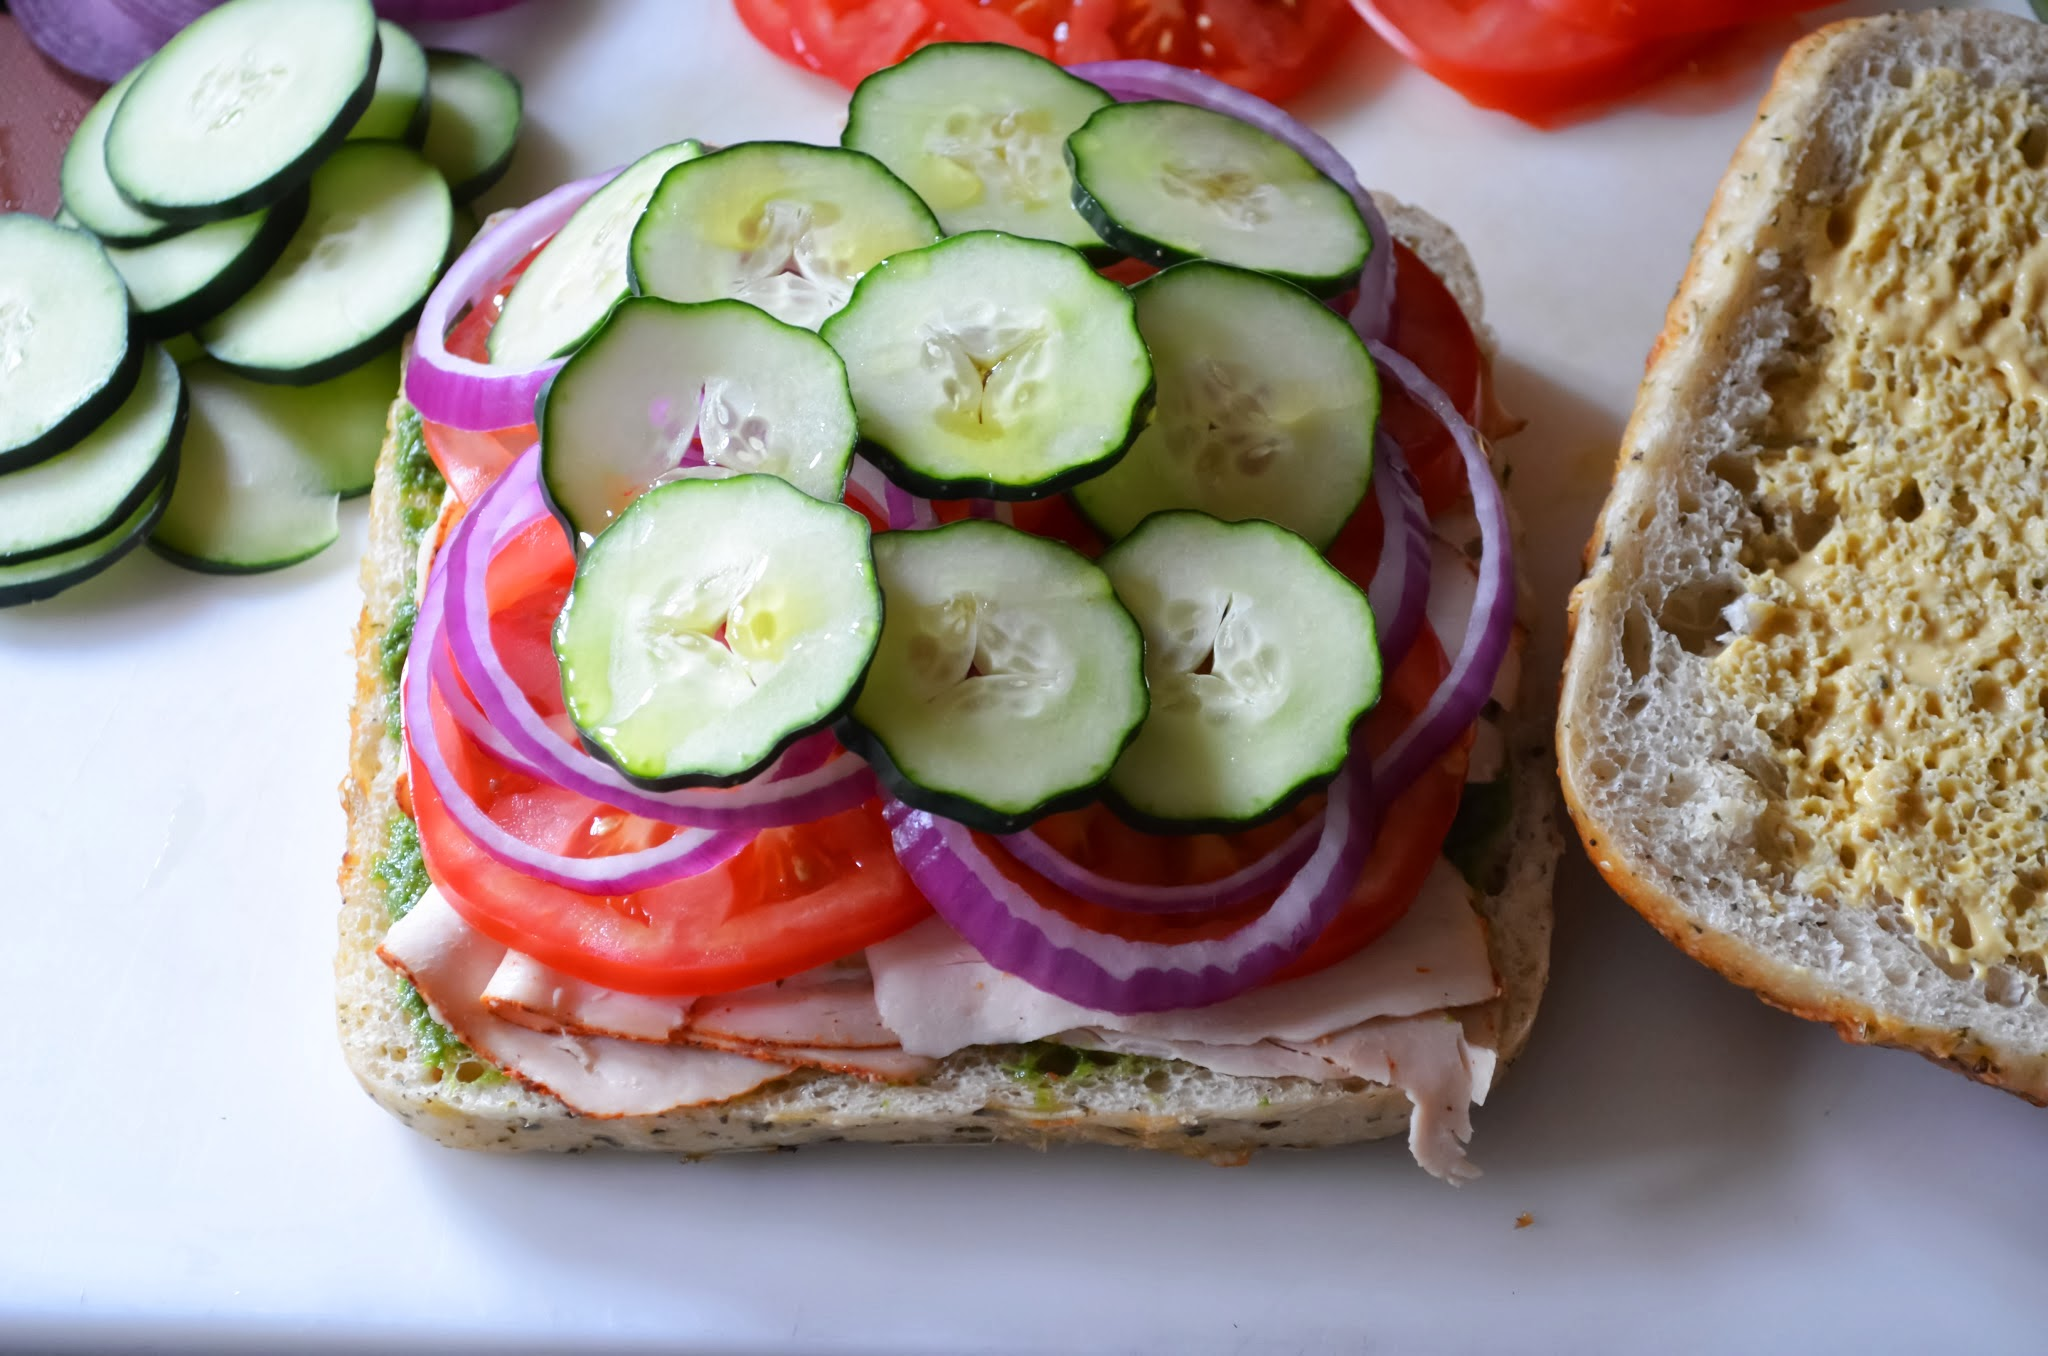 Sliced Cucumbers on top of red onions.